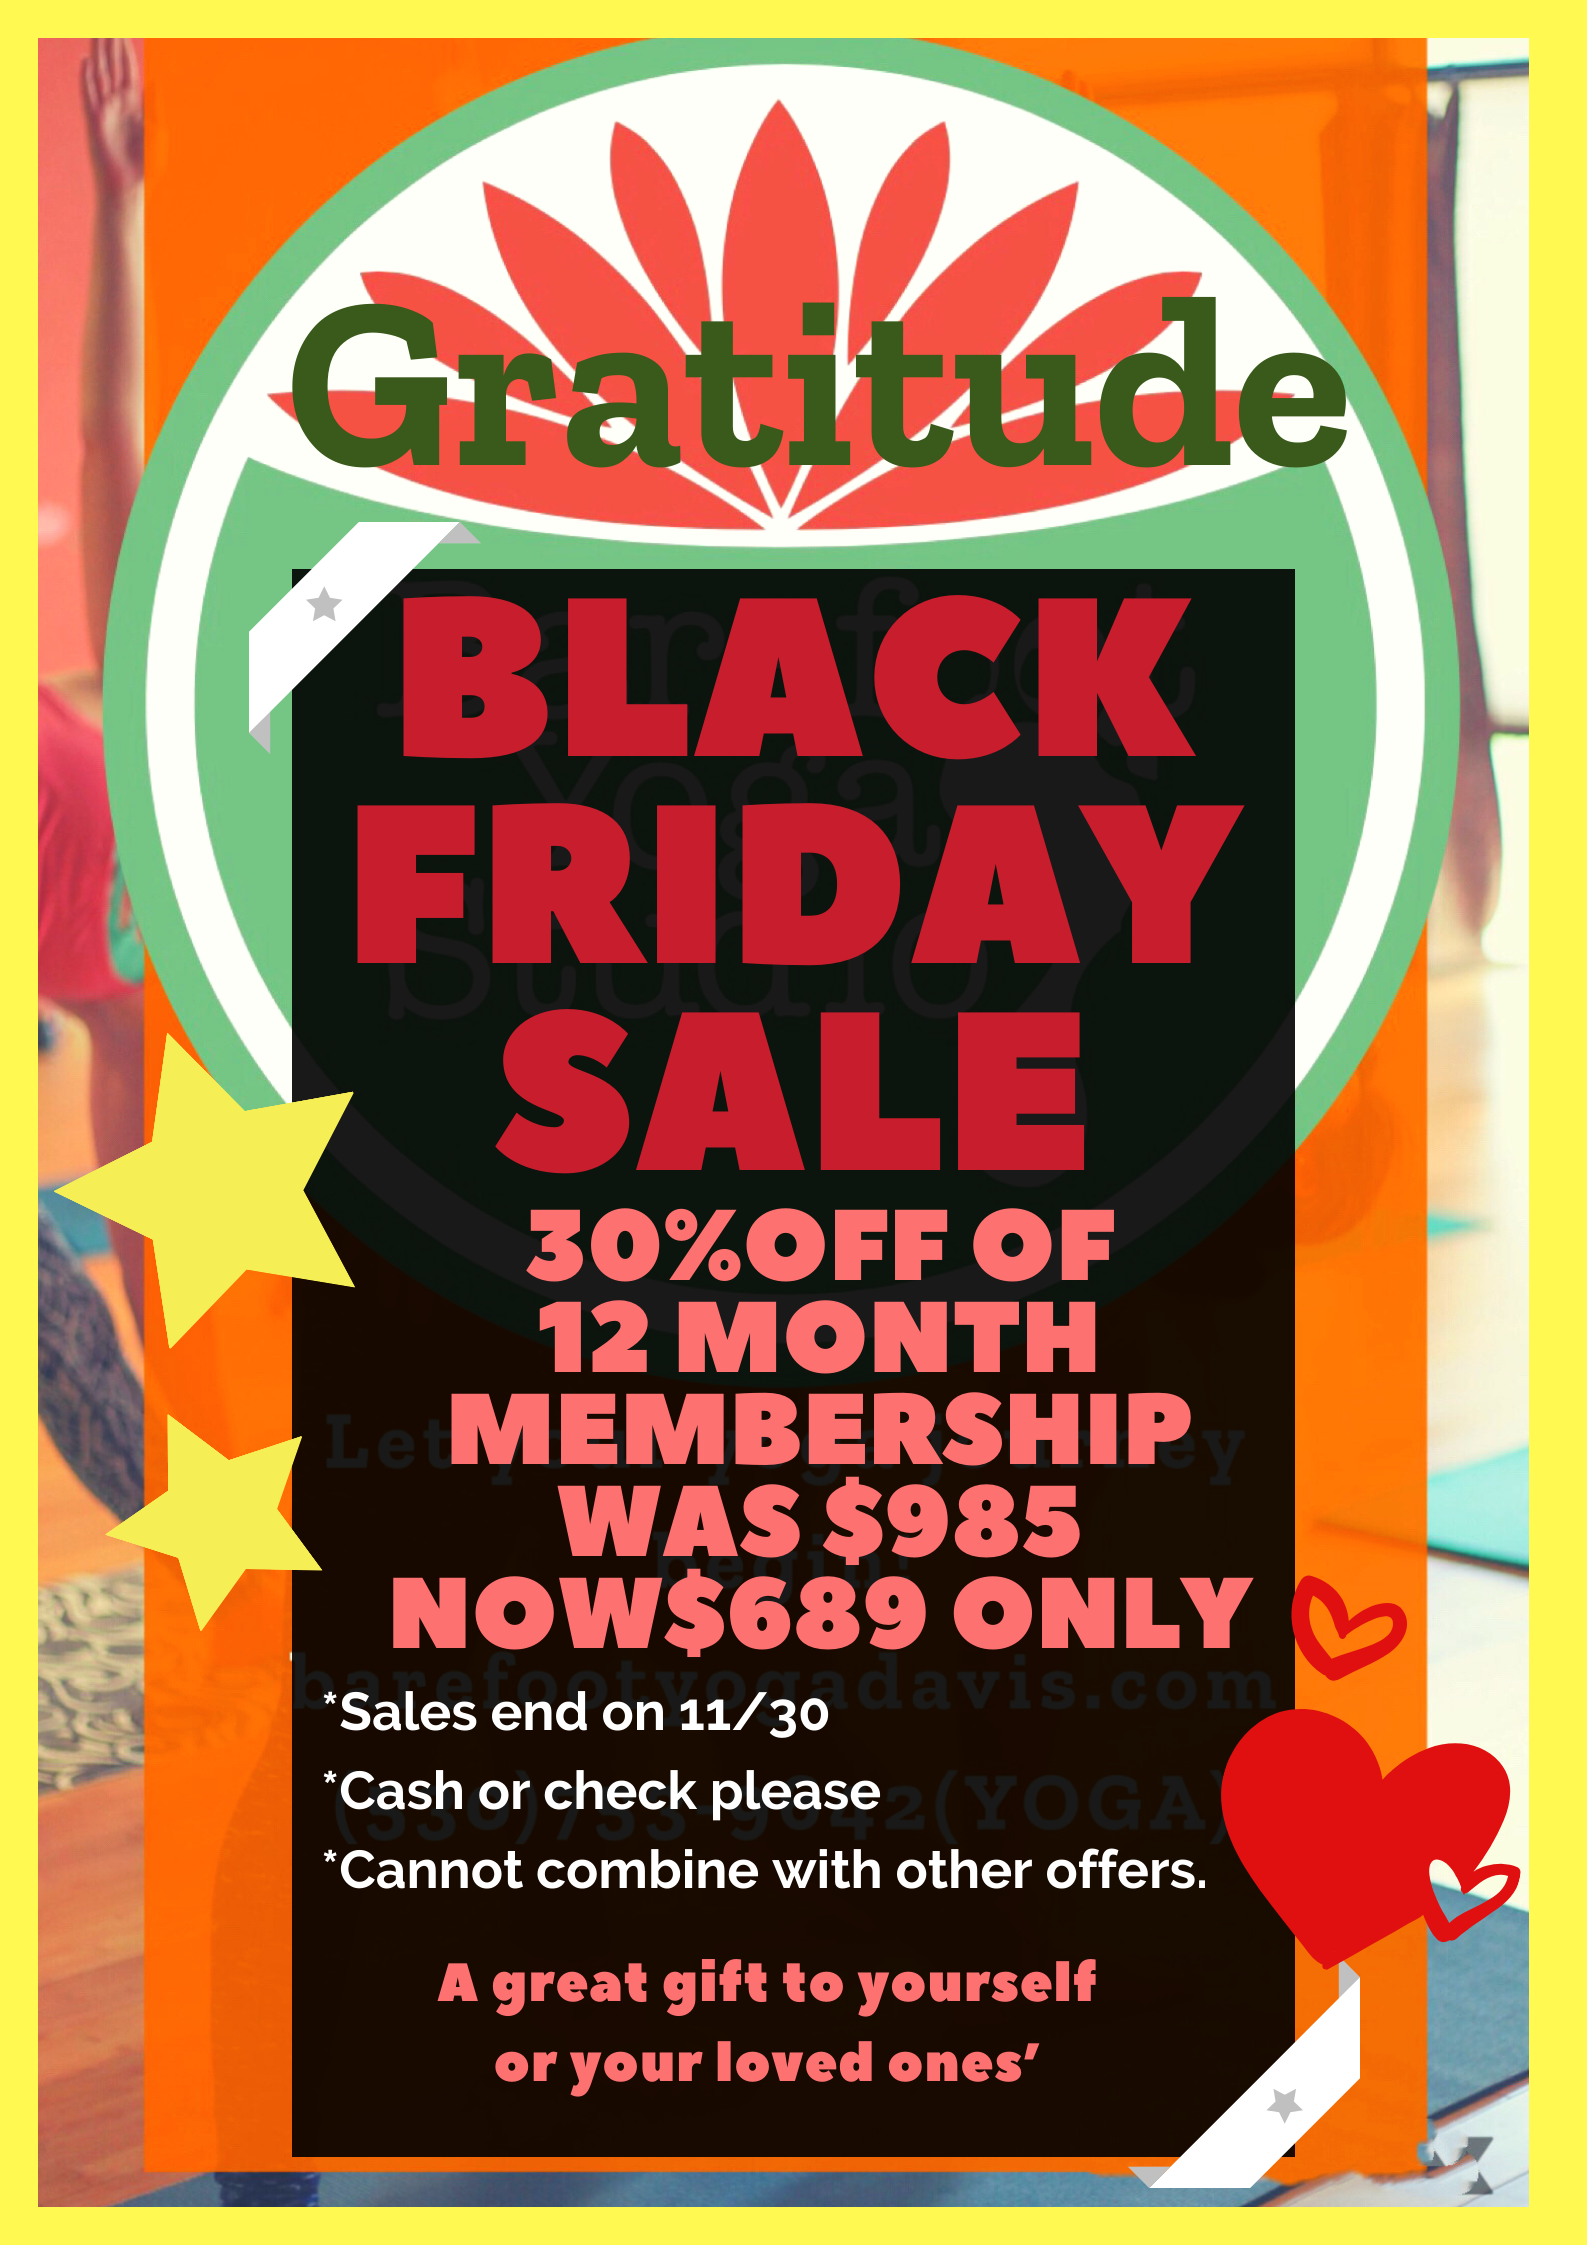 Annual Black Friday Membership Sale Barefoot Yoga Studio